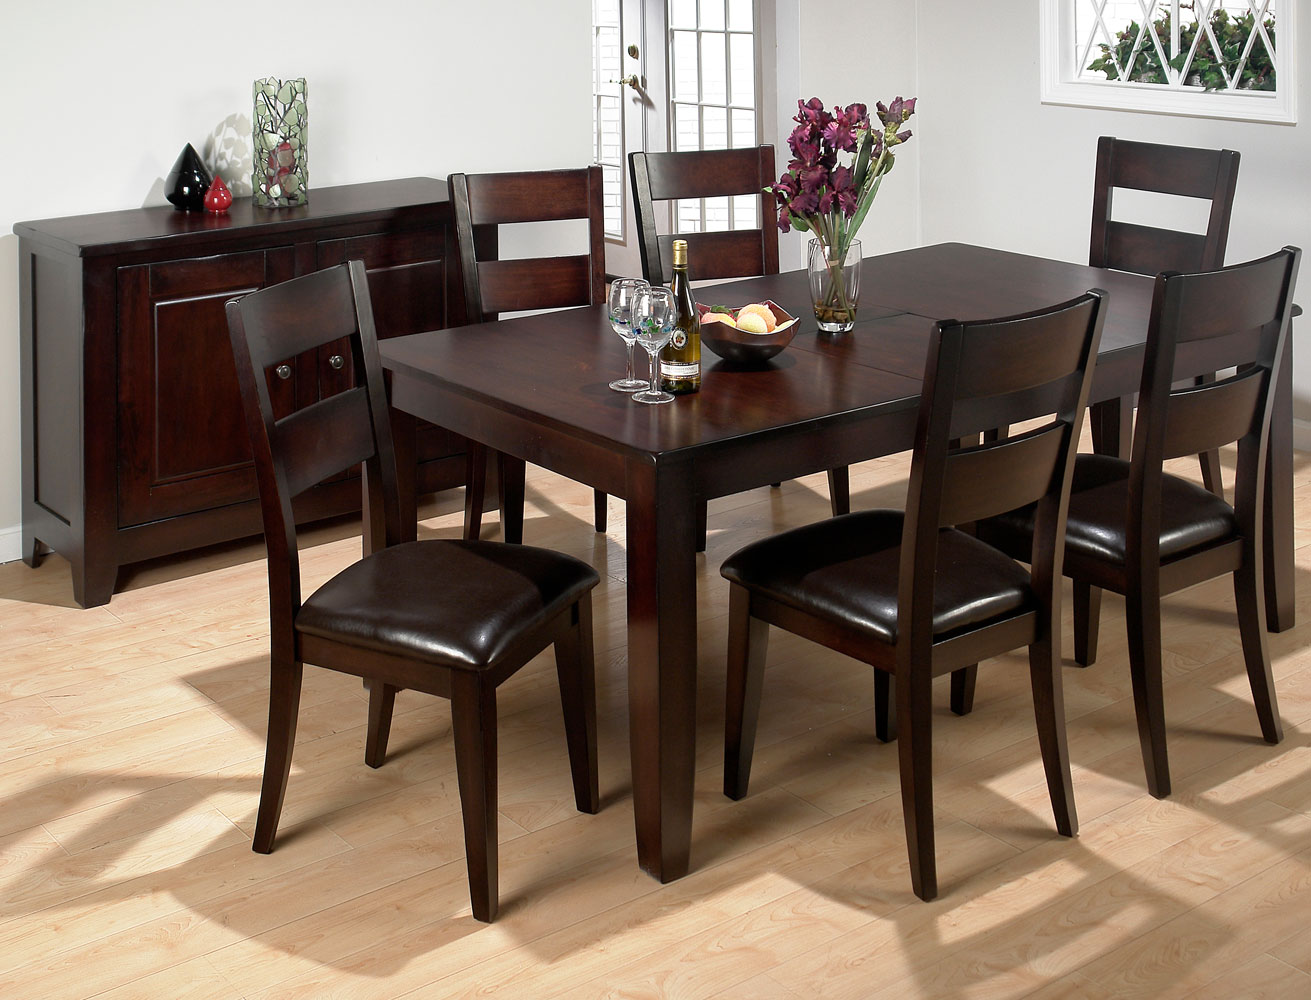 target dining room sets - home design ideas and pictures